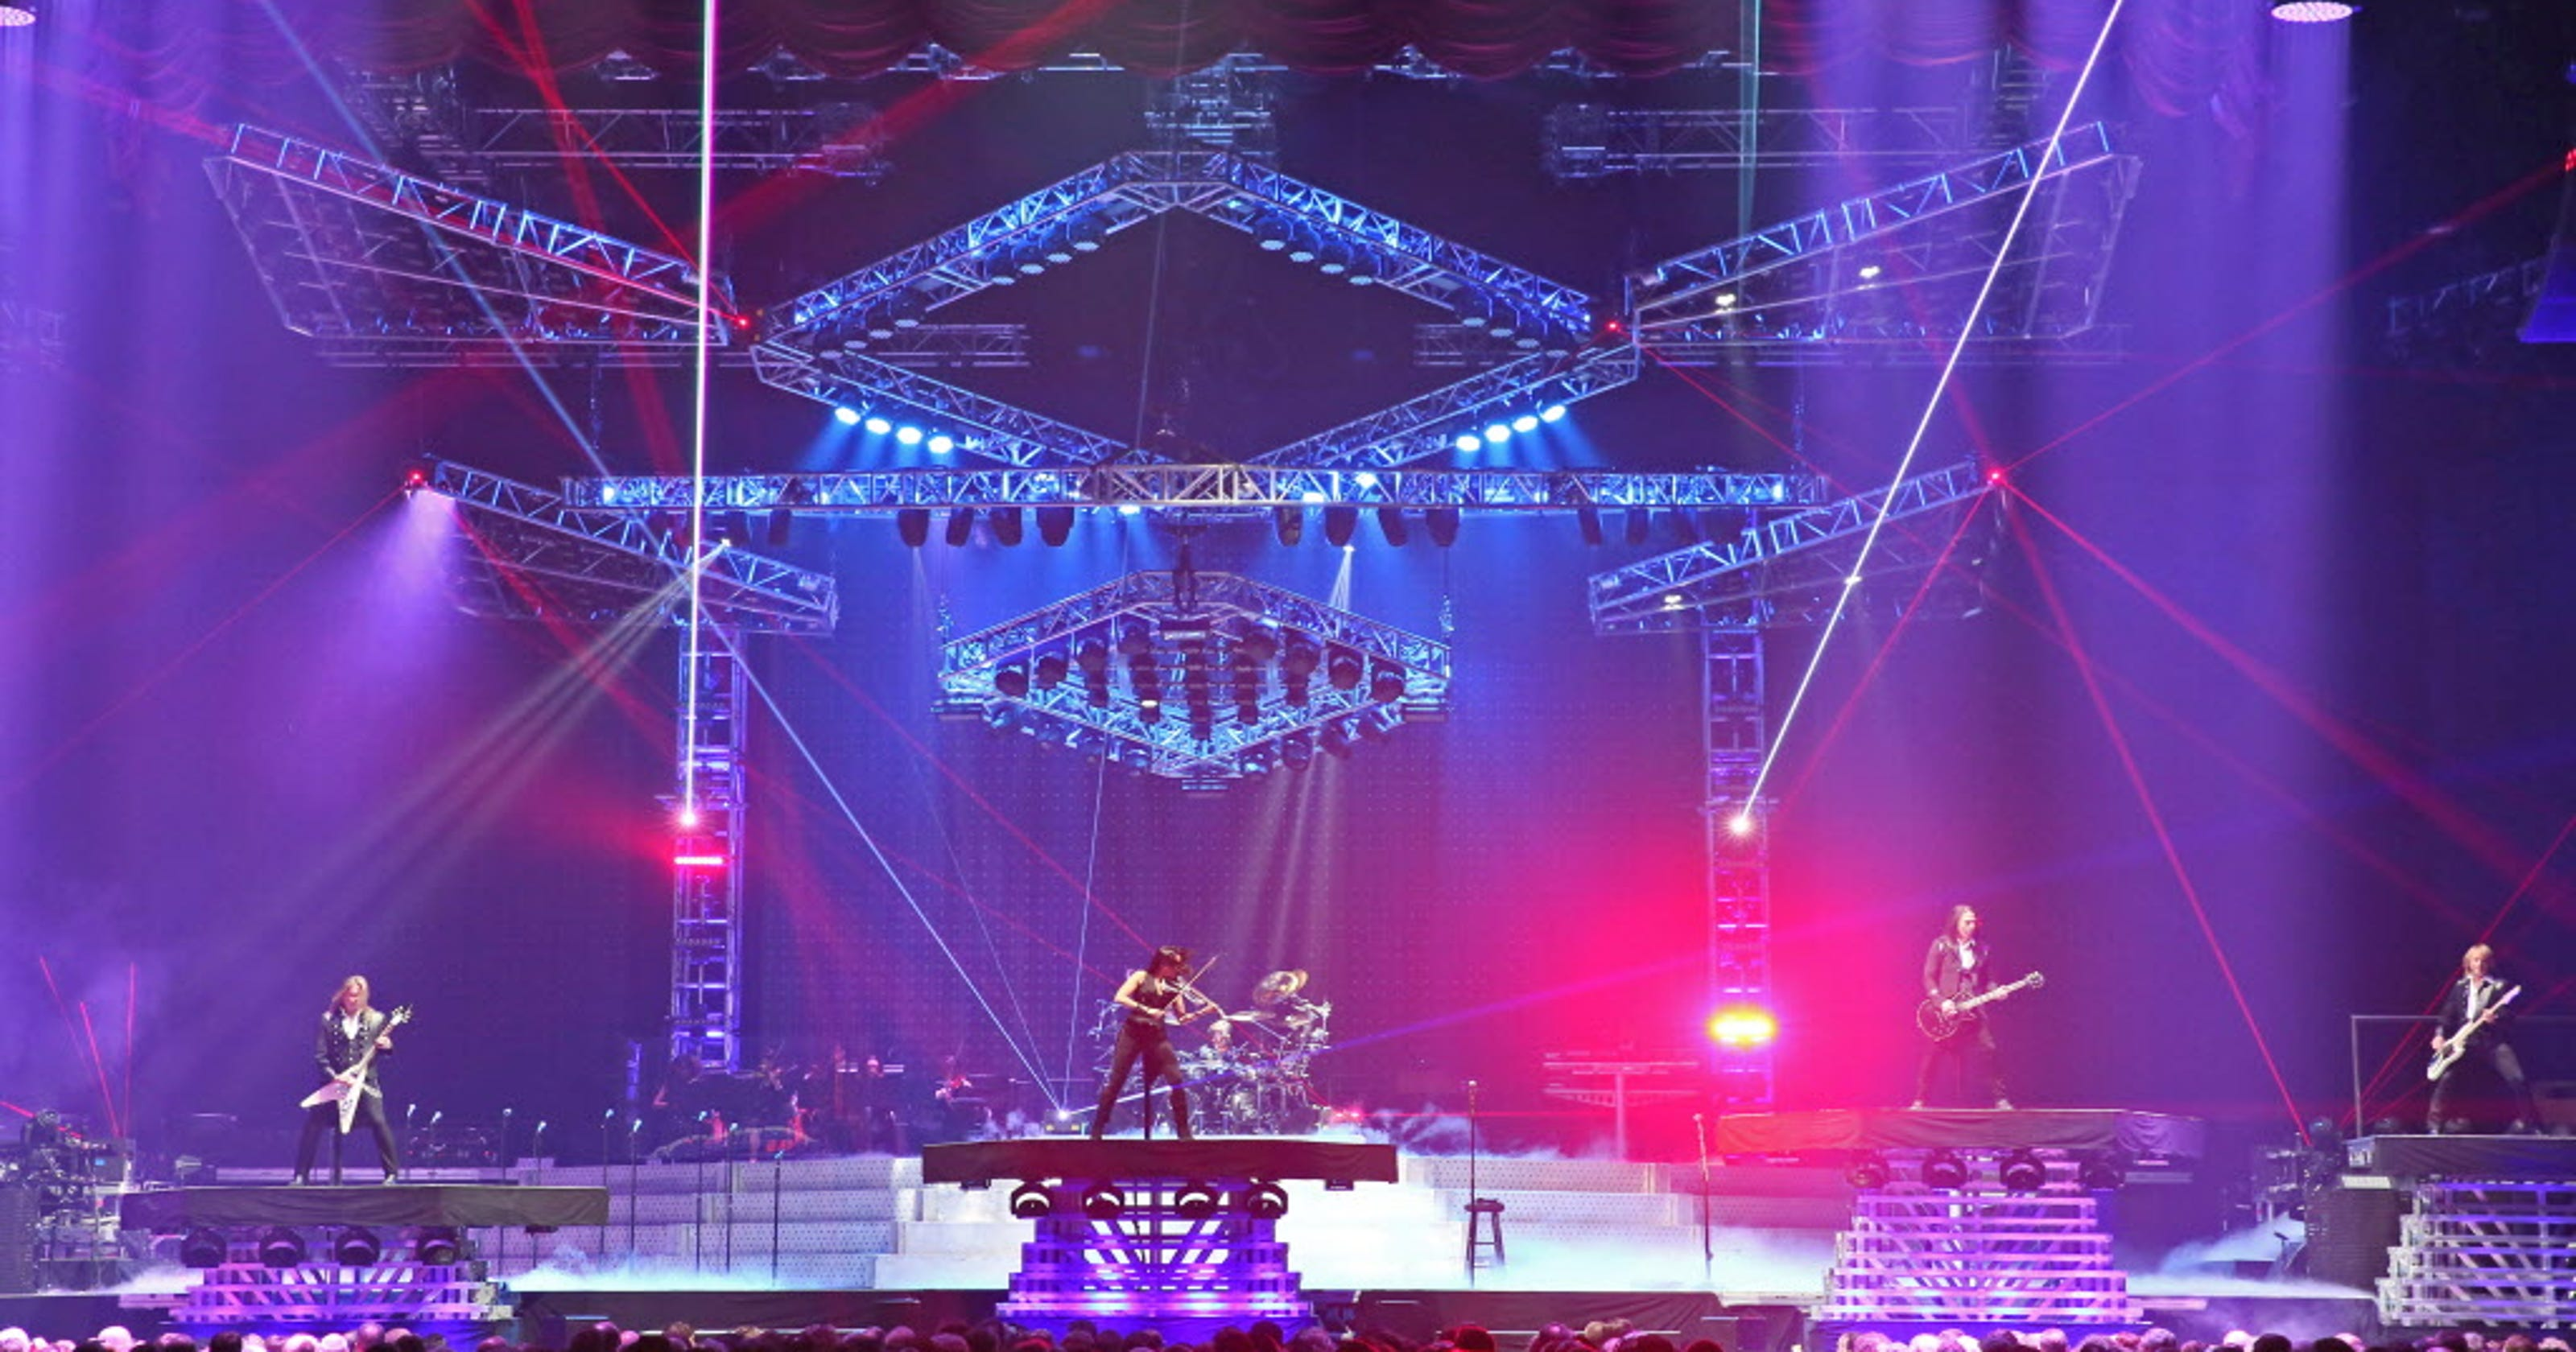 few surprises from trans siberian orchestra in milwaukee - Trans Siberian Orchestra Christmas Canon Rock